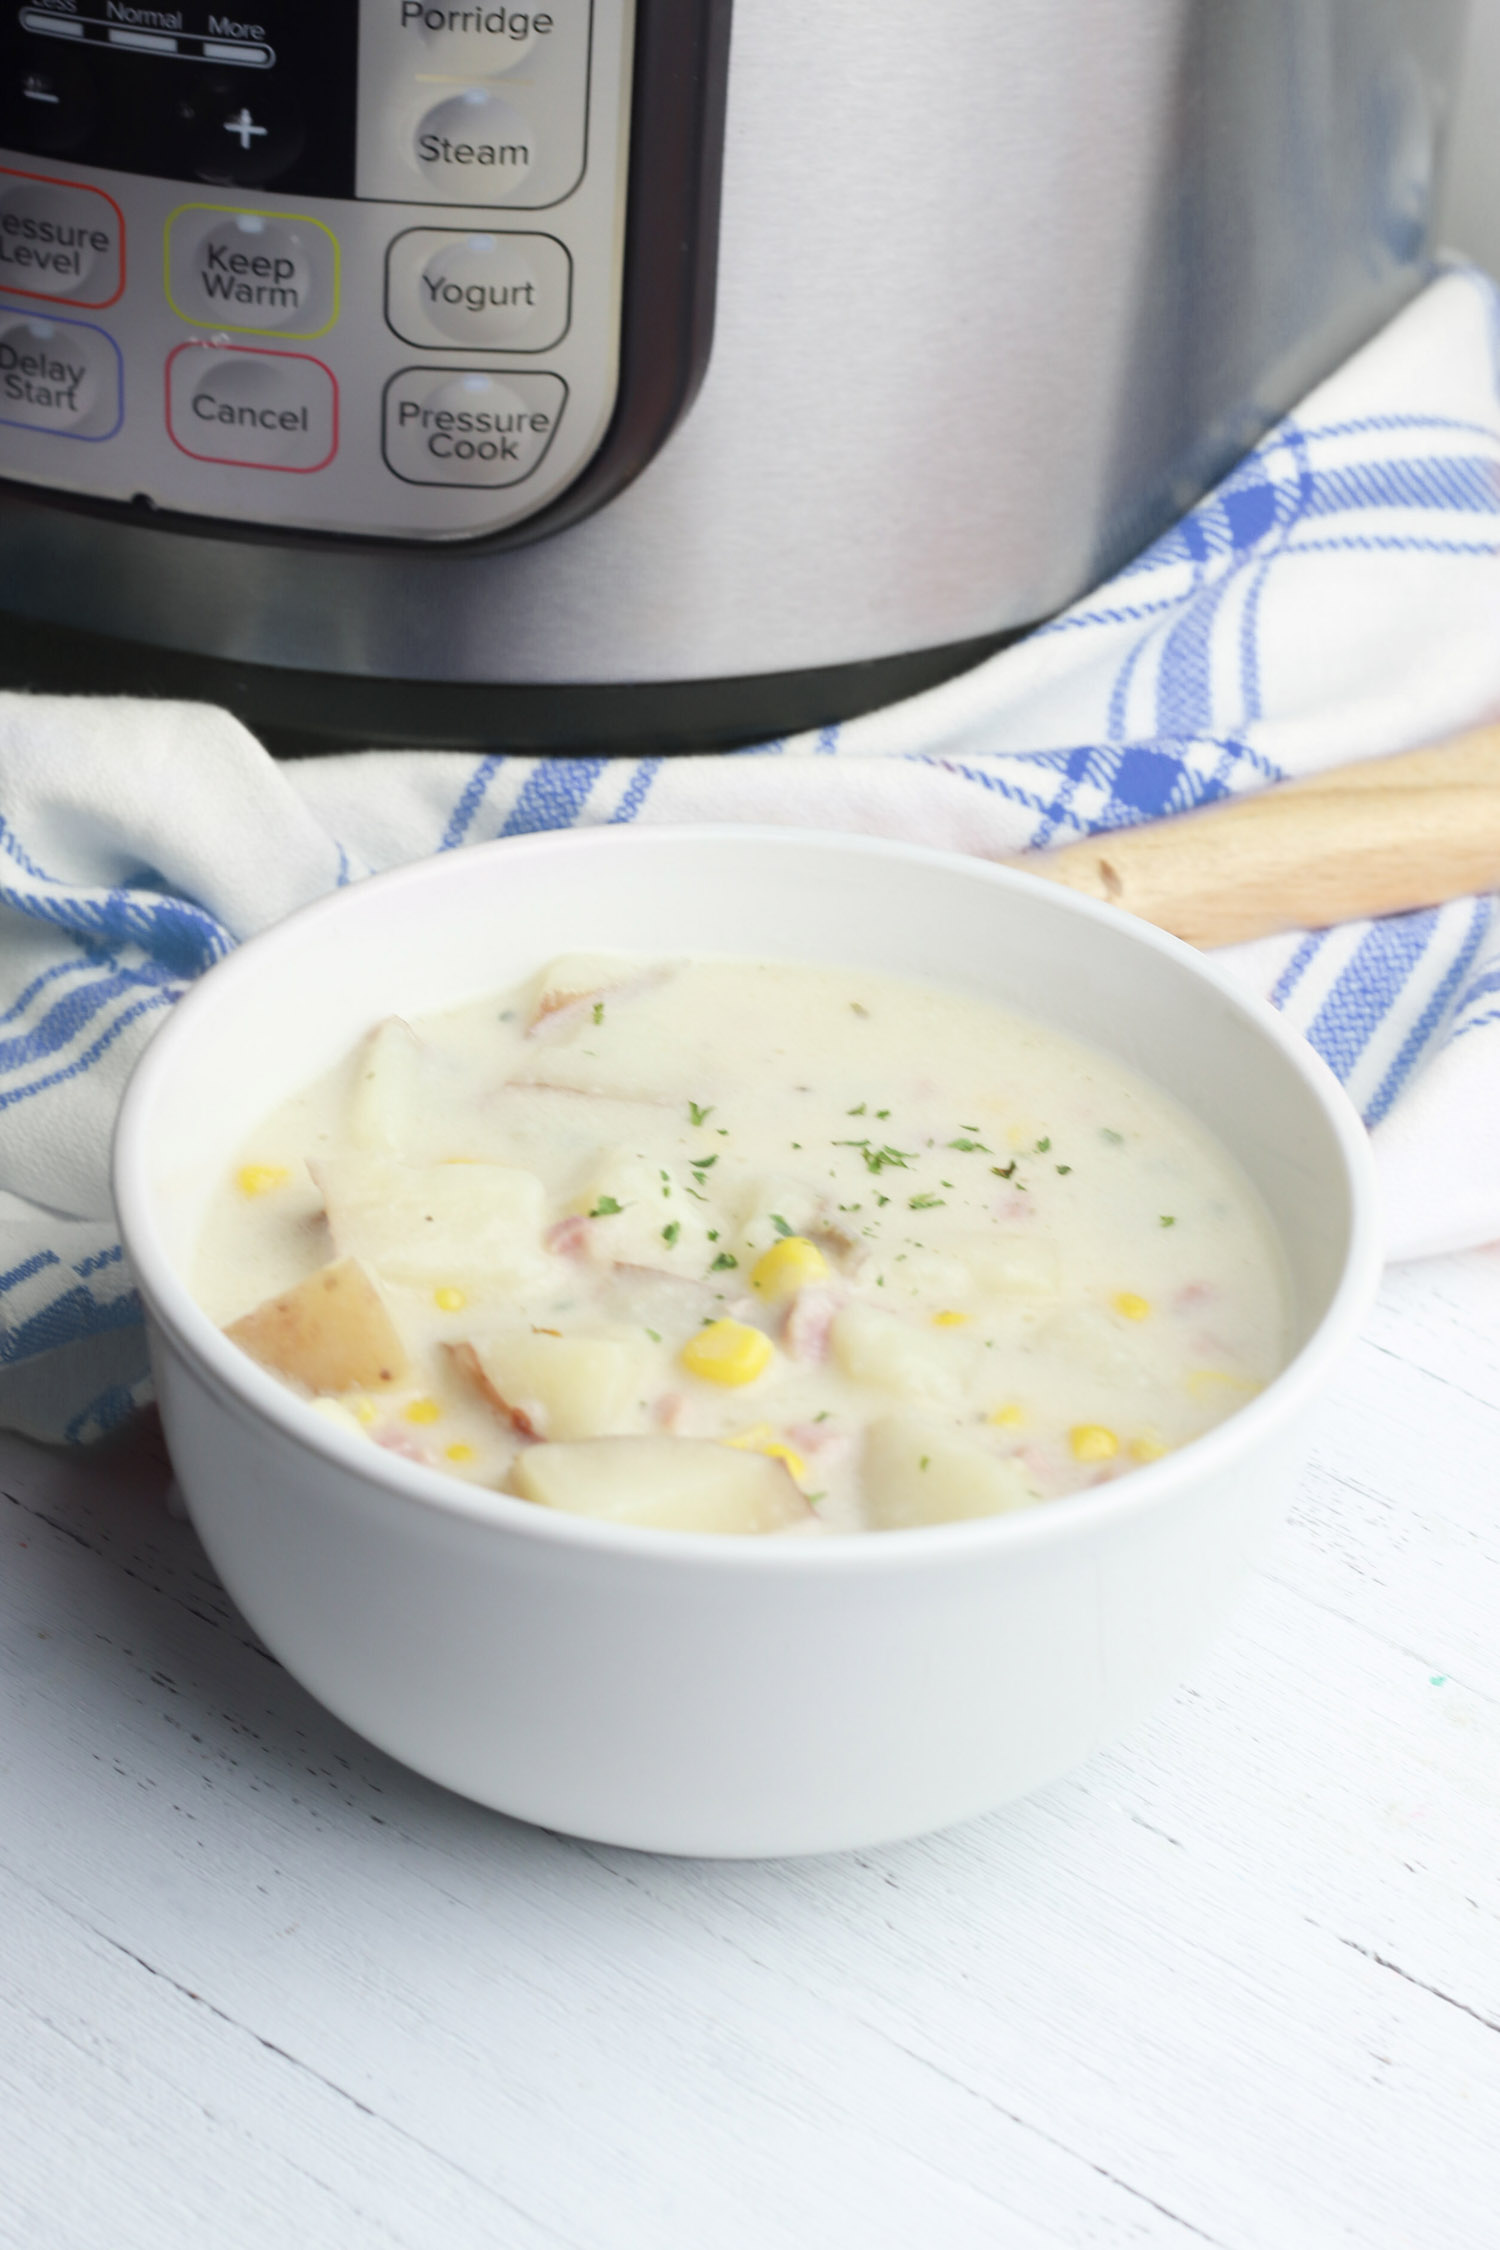 bowl of corn chowder next to an instant pot